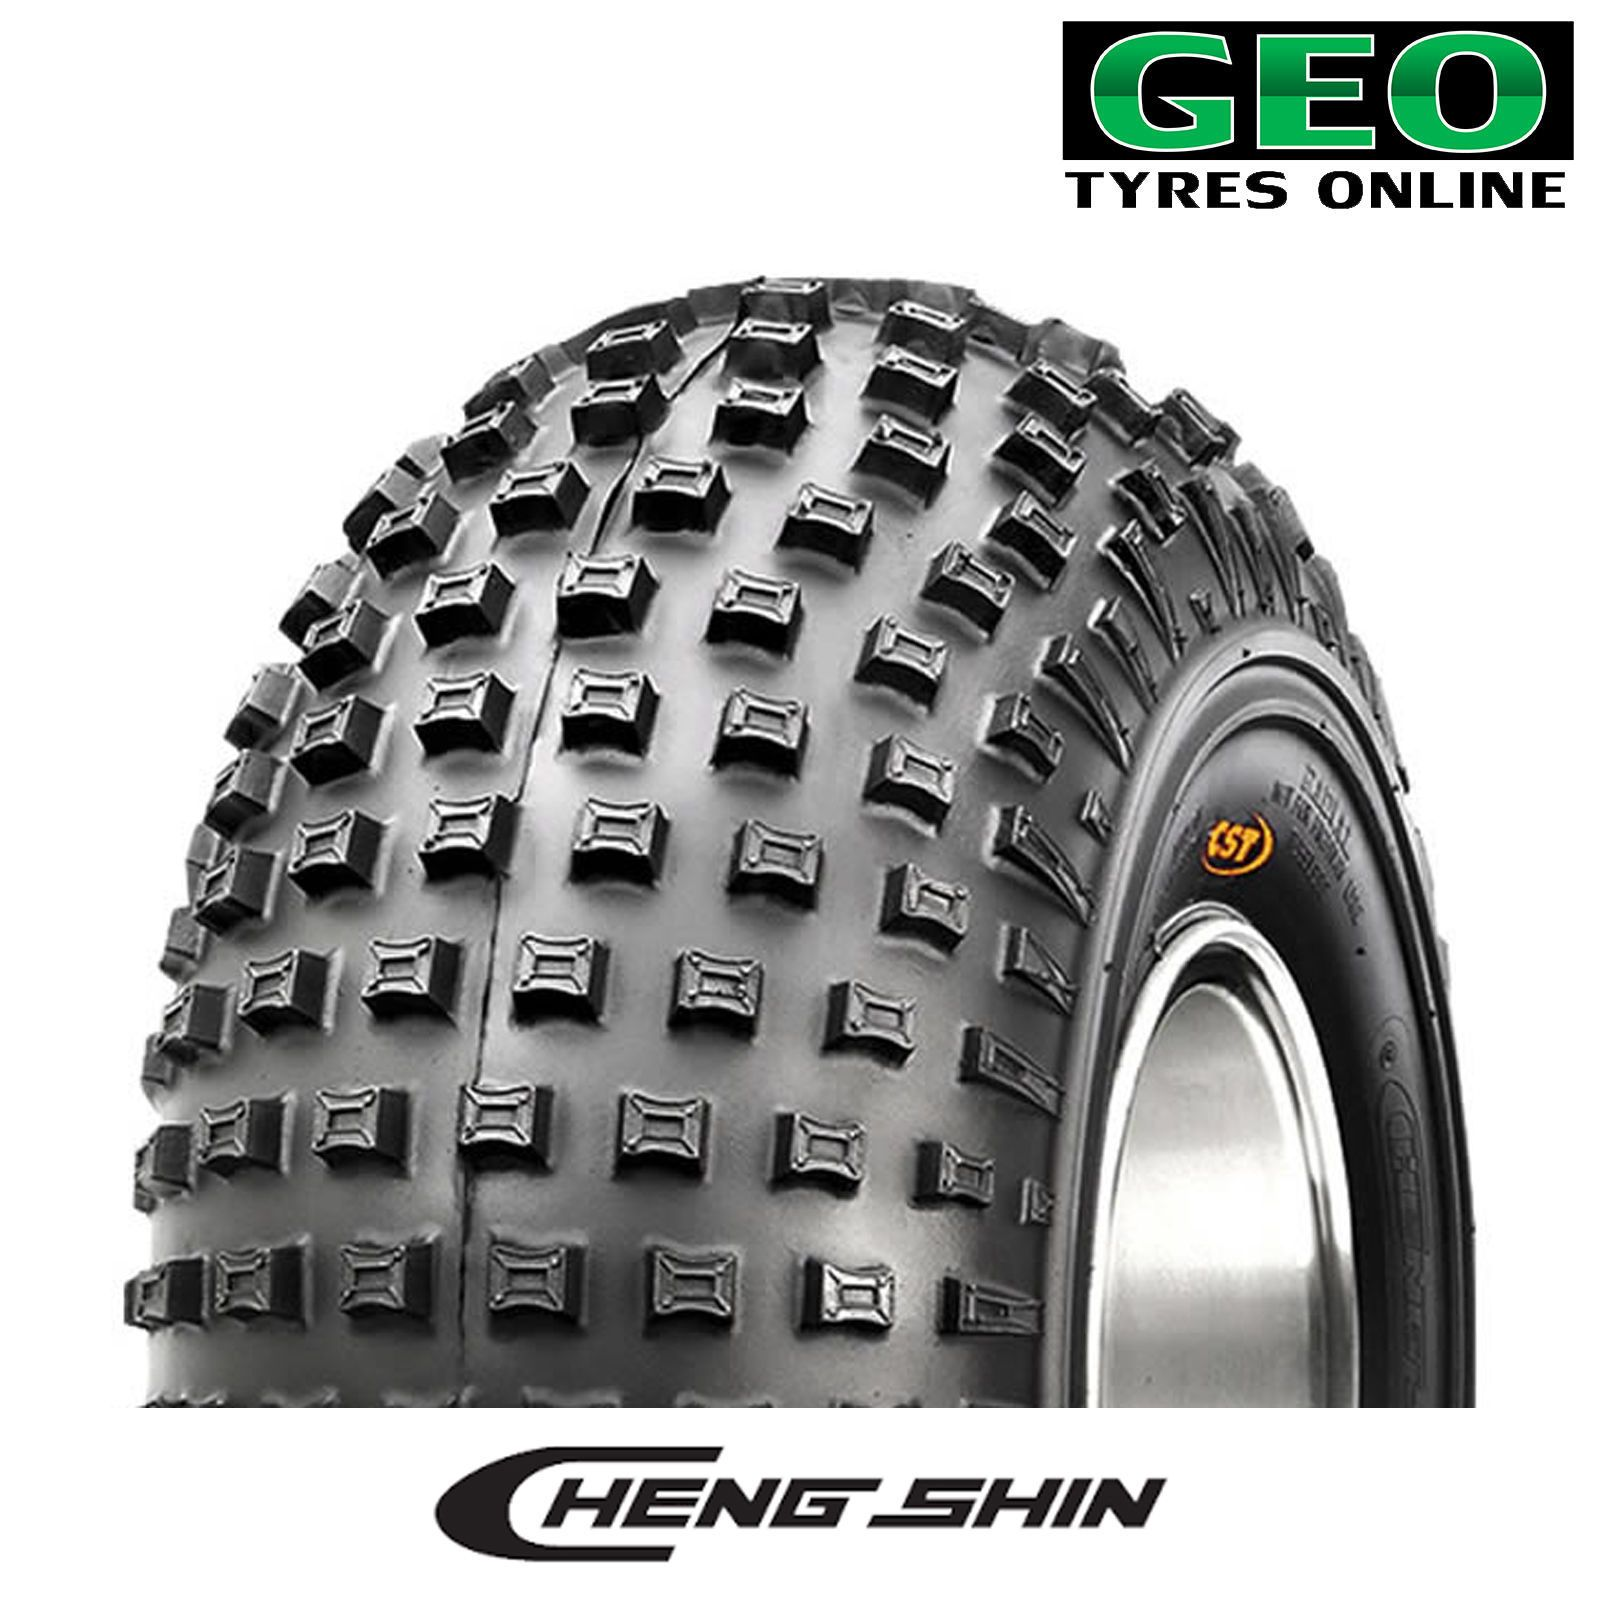 Australia S Best Range Online For Quality Atv Quad Bike Tyres